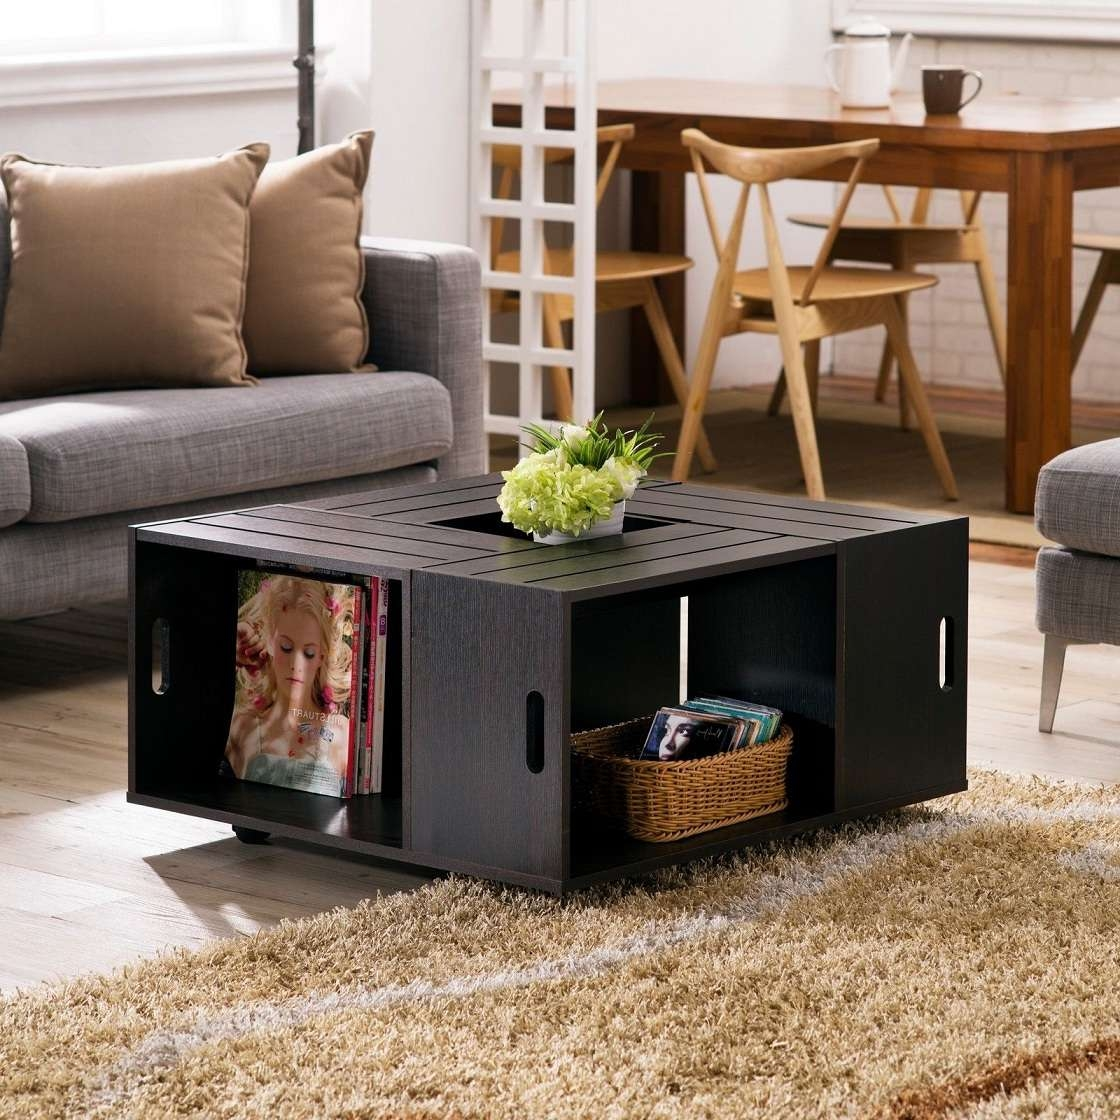 Popular Square Coffee Table Storages Within Coffee Tables With Storage Drawers In Reputable Swivel Coffee (View 15 of 20)